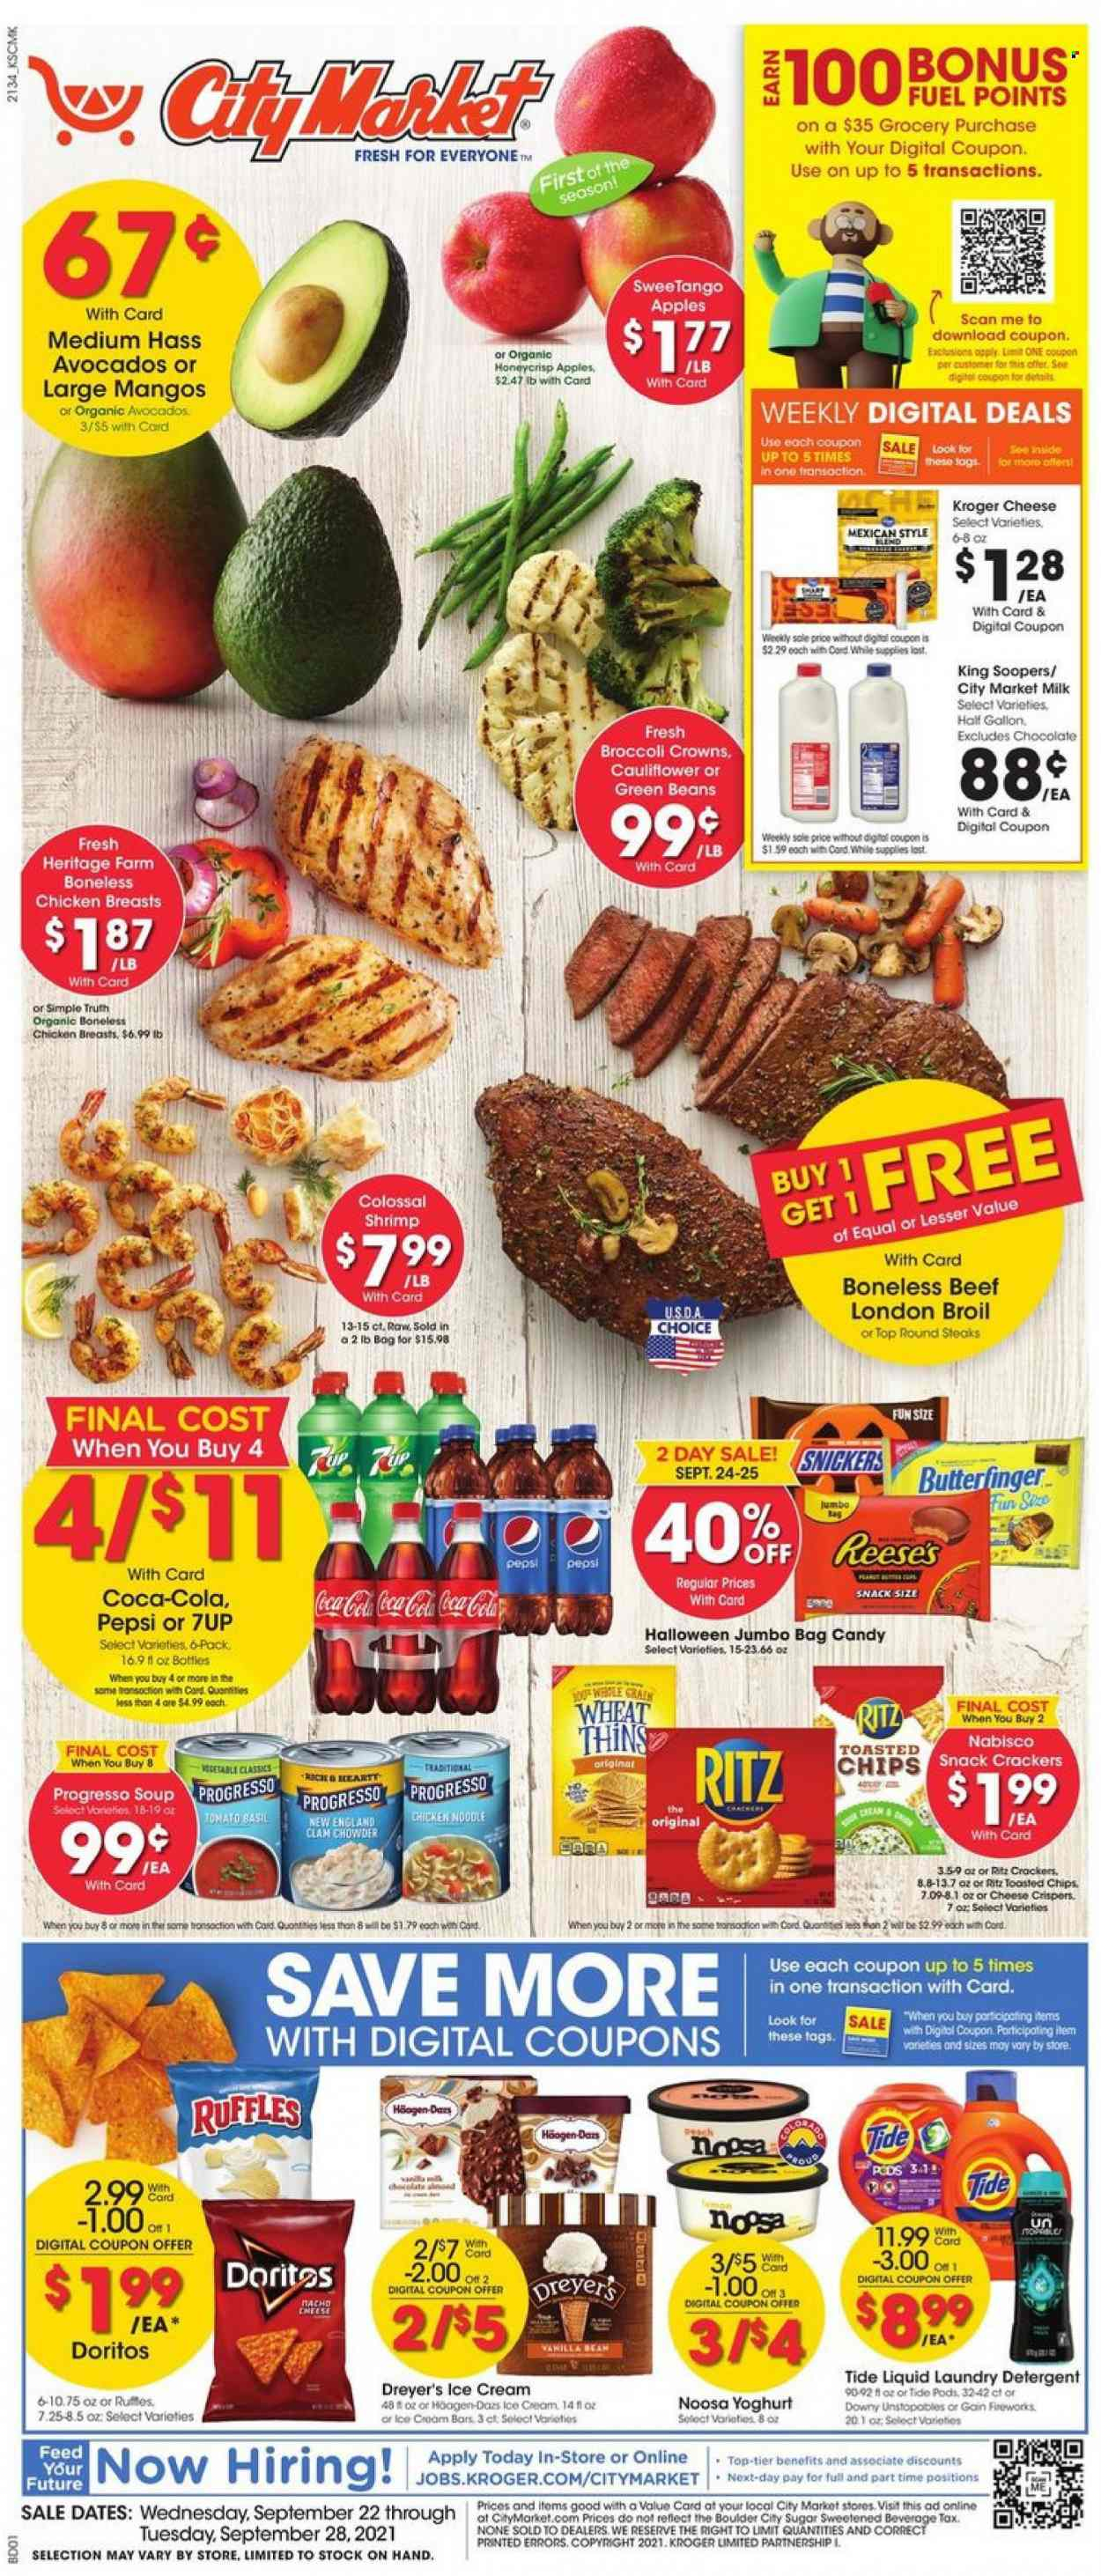 City Market Ad from september 22 to 28 2021 - Page 1